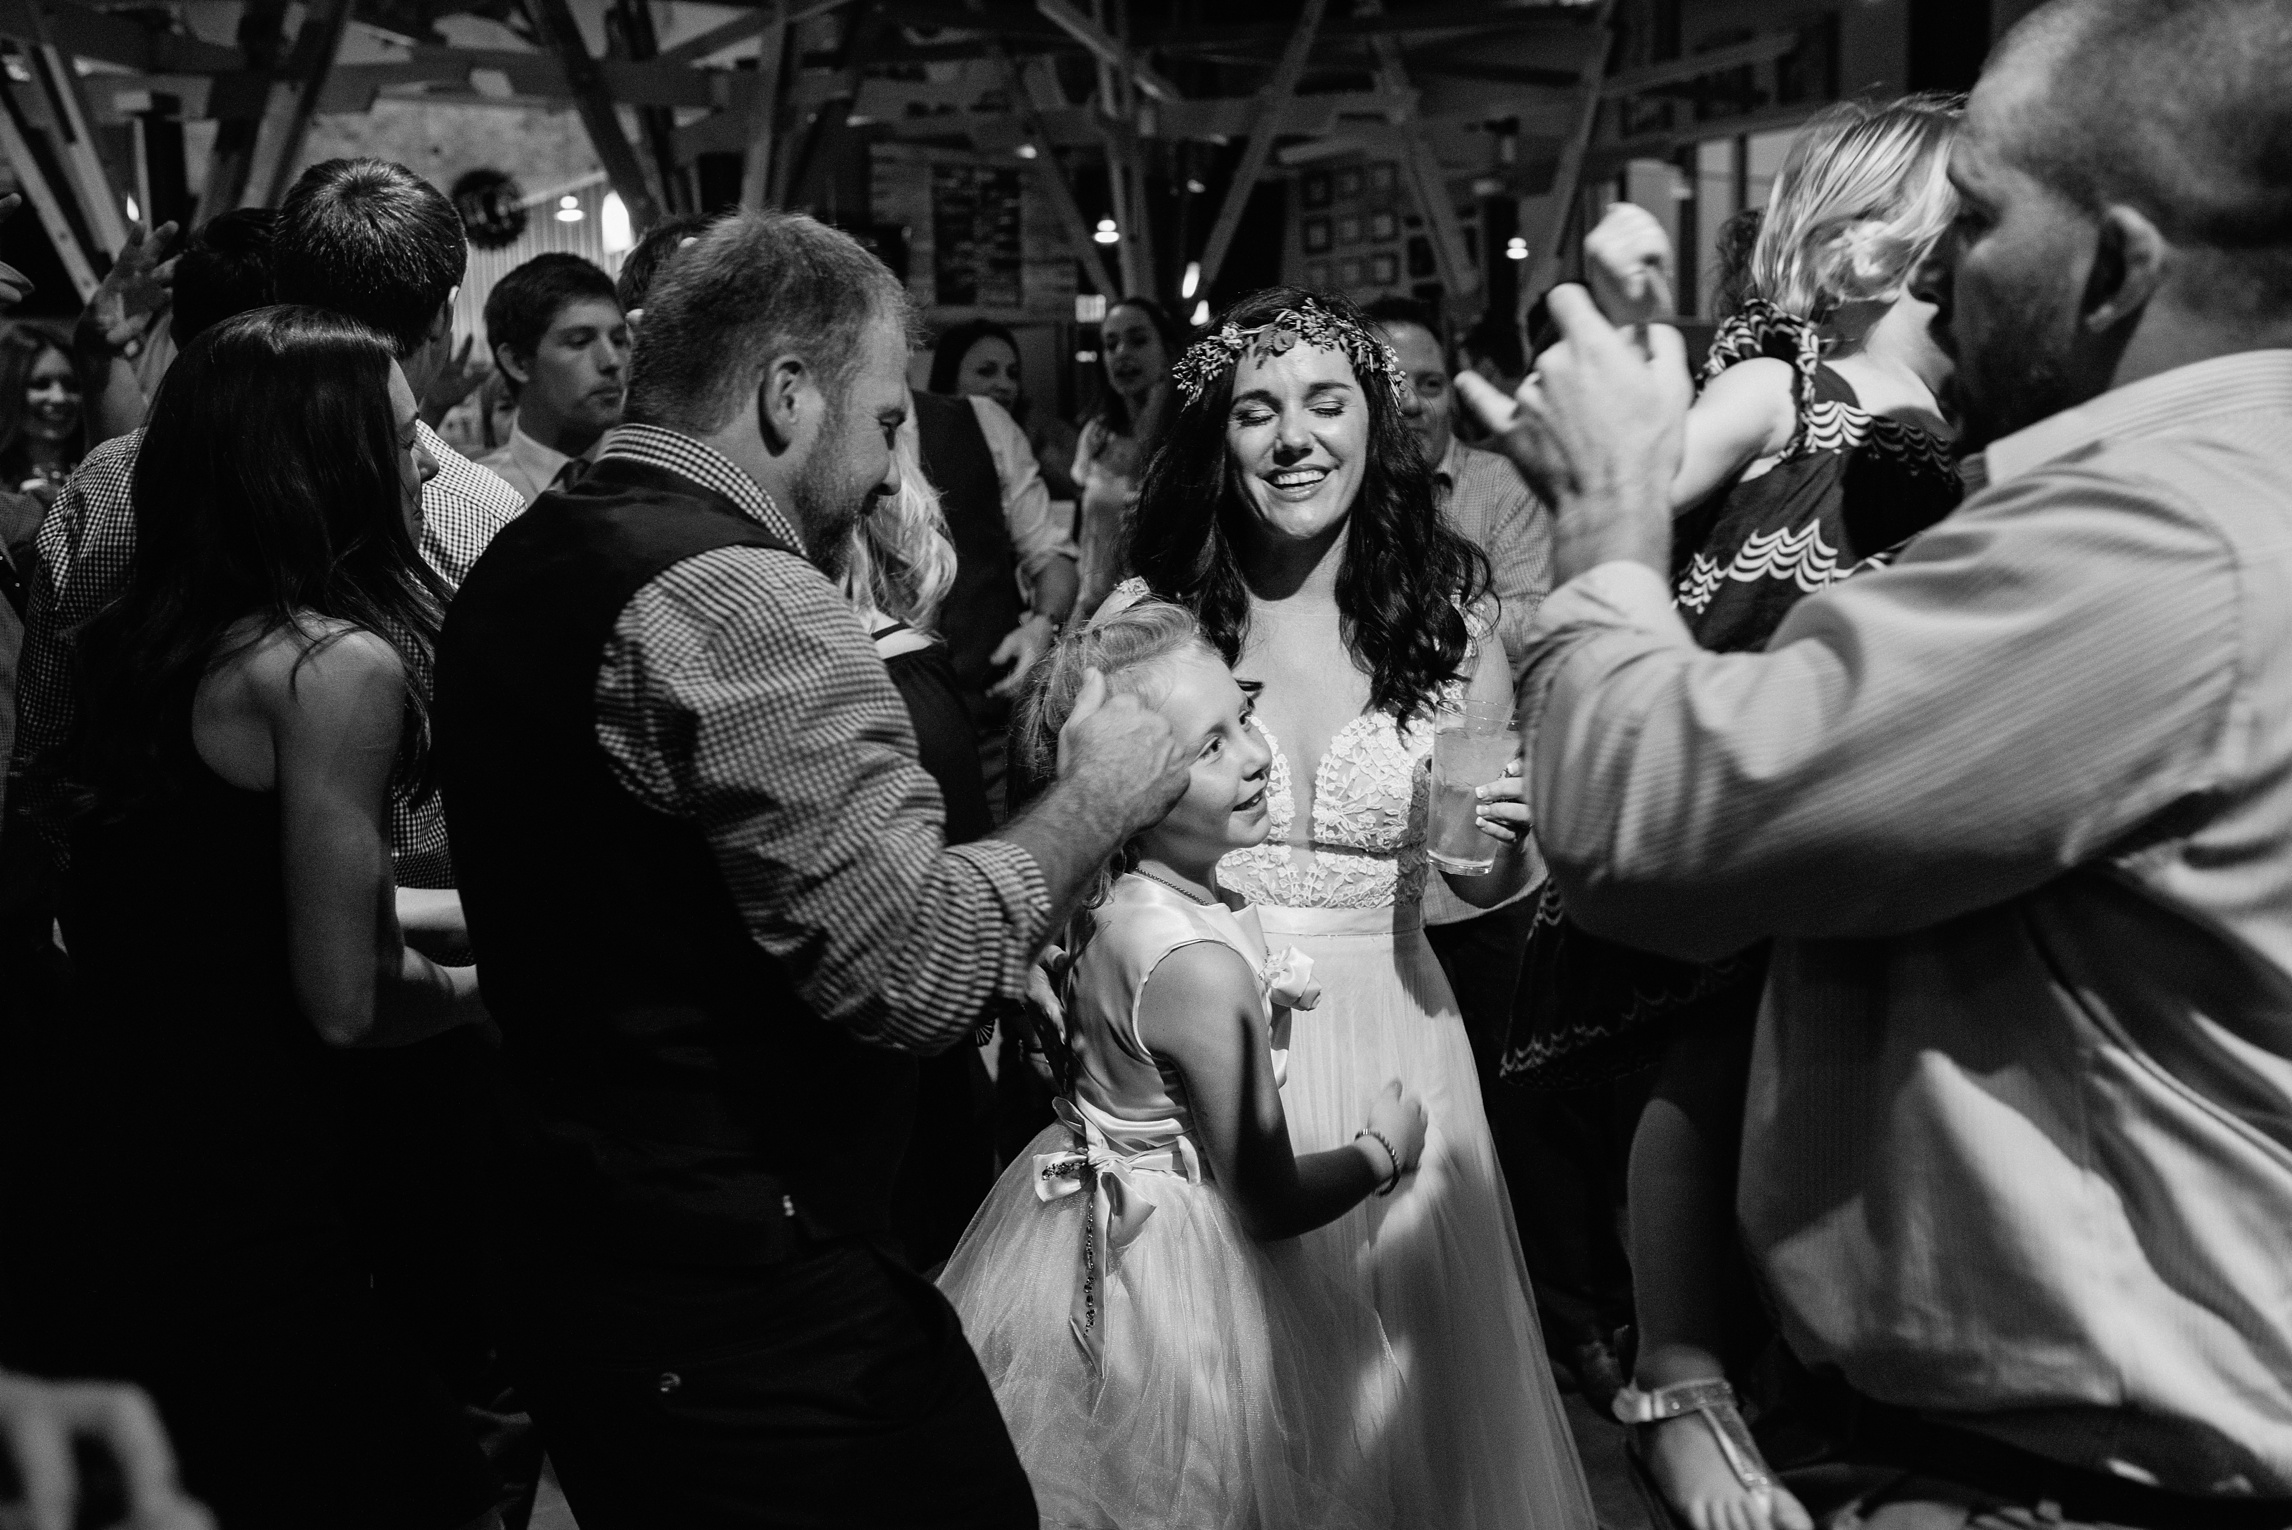 A bride and groom dance with their daughter on their wedding day. Wedding photography by Sonja Salzburg of Sonja K Photography.